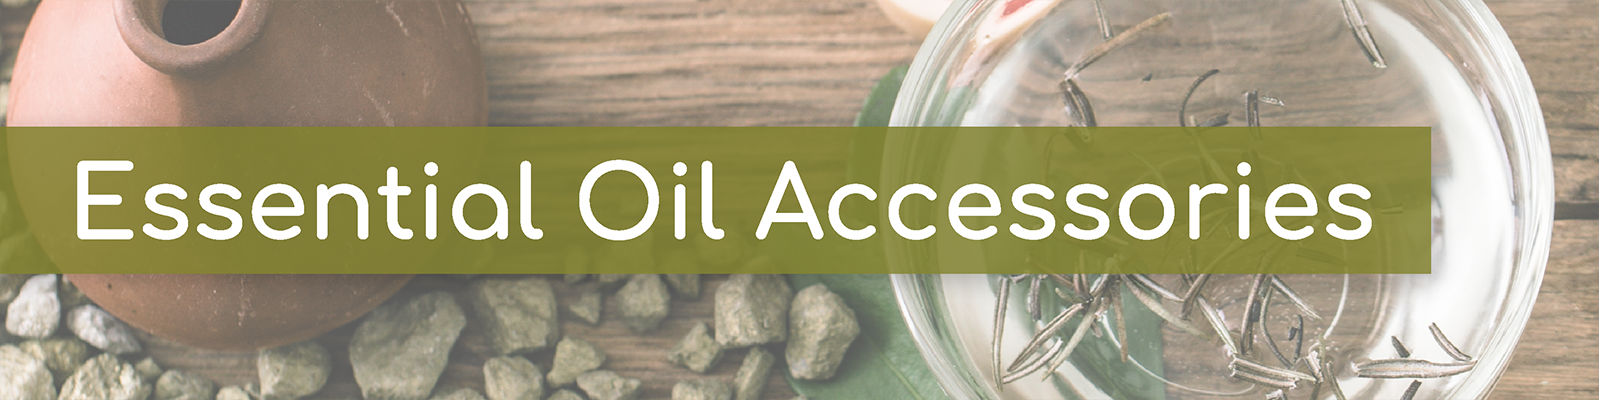 Essential oil accessories collection